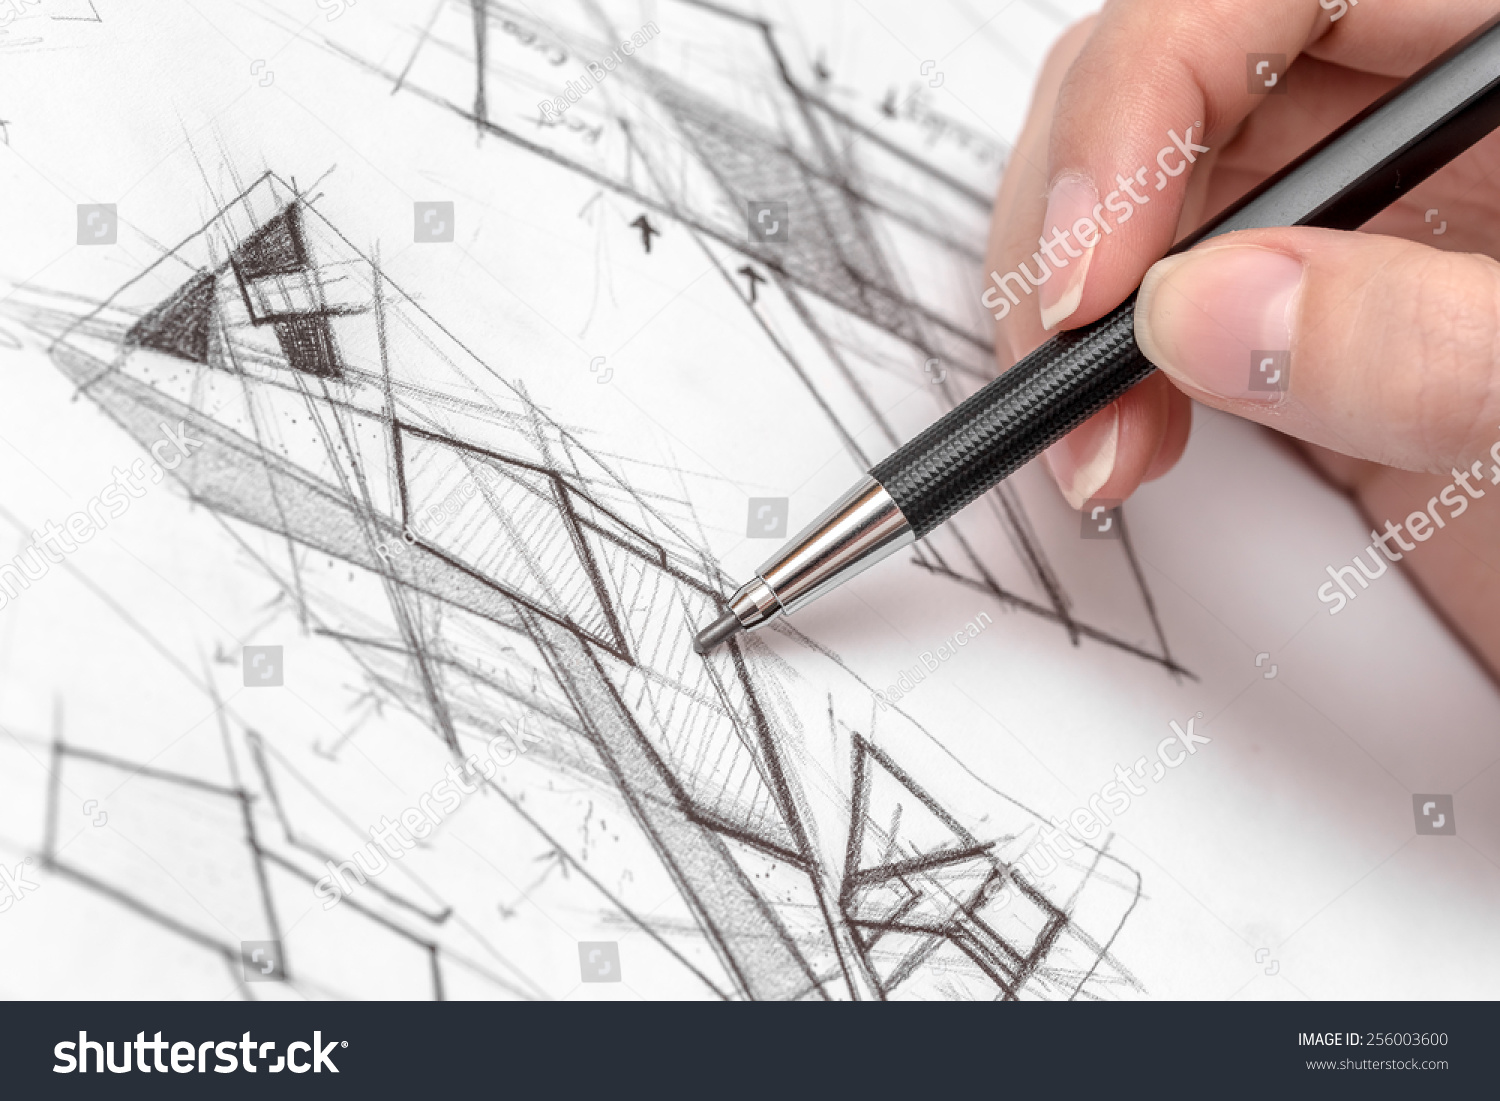 ^ rchitect Hand Drawing House Plan Sketch Stock Photo 256003600 ...